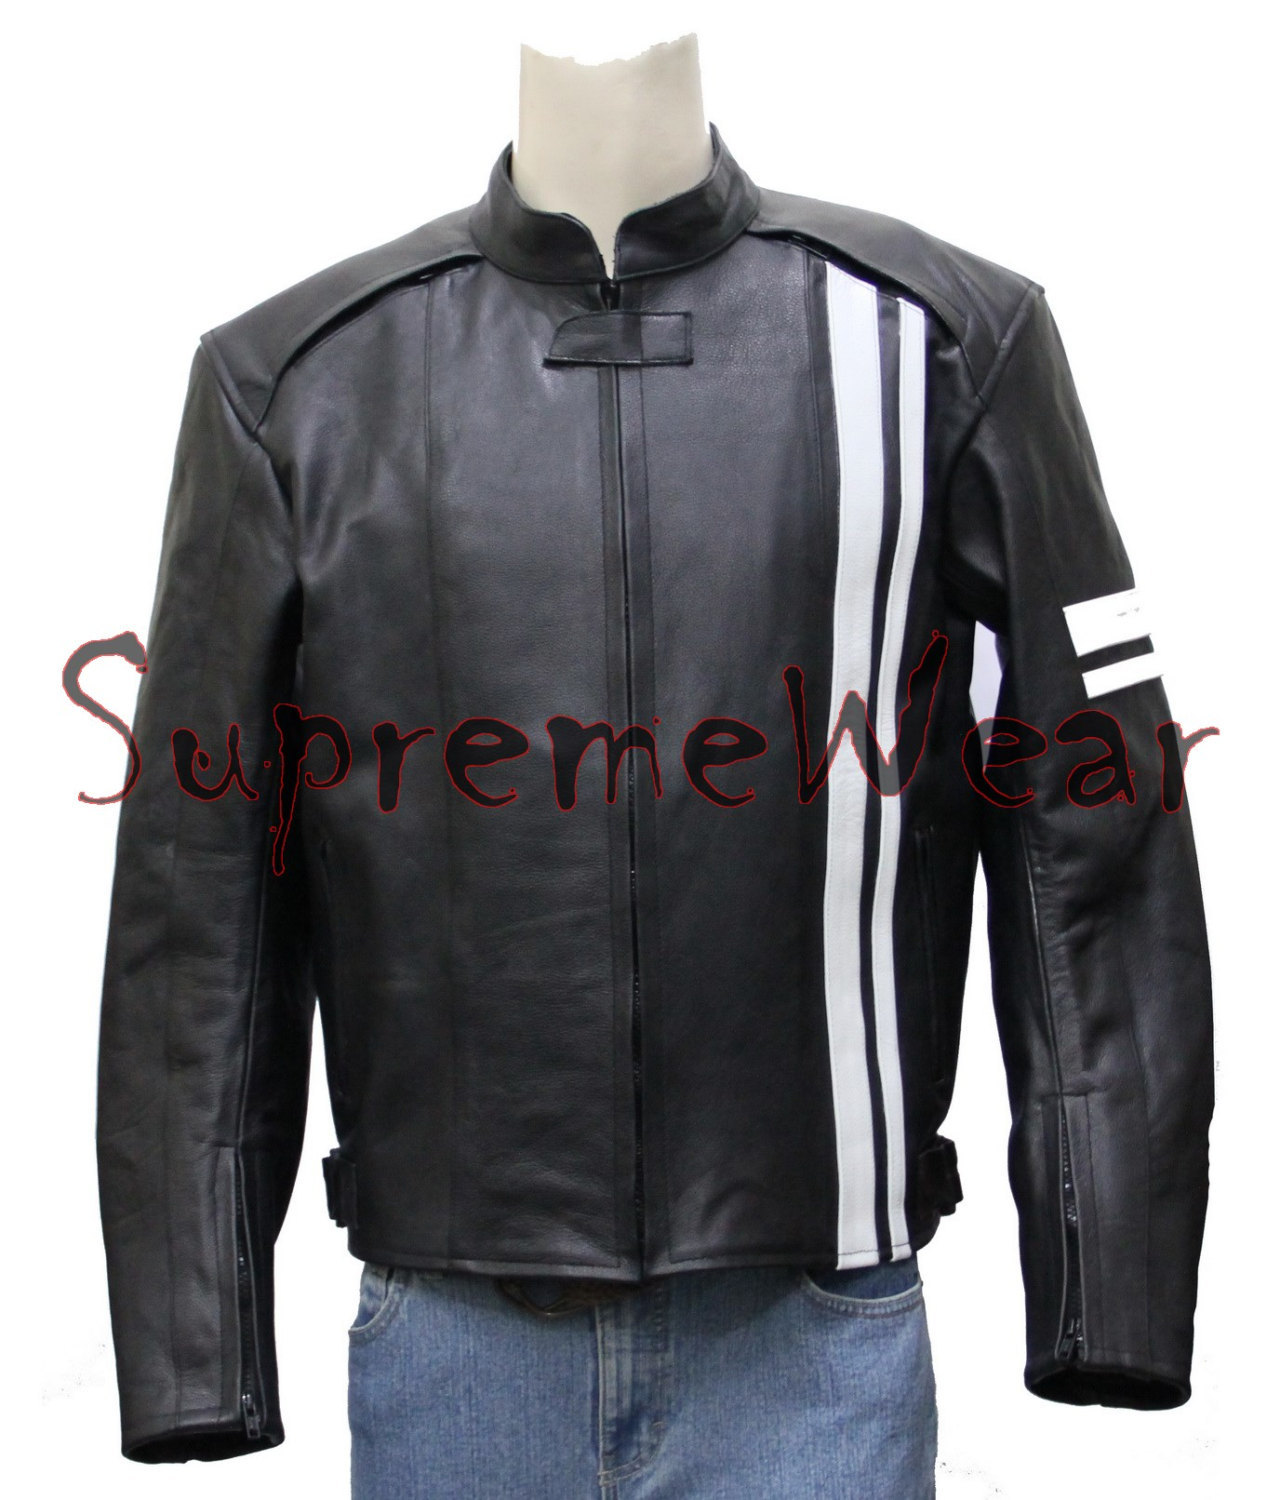 Leather sport jackets